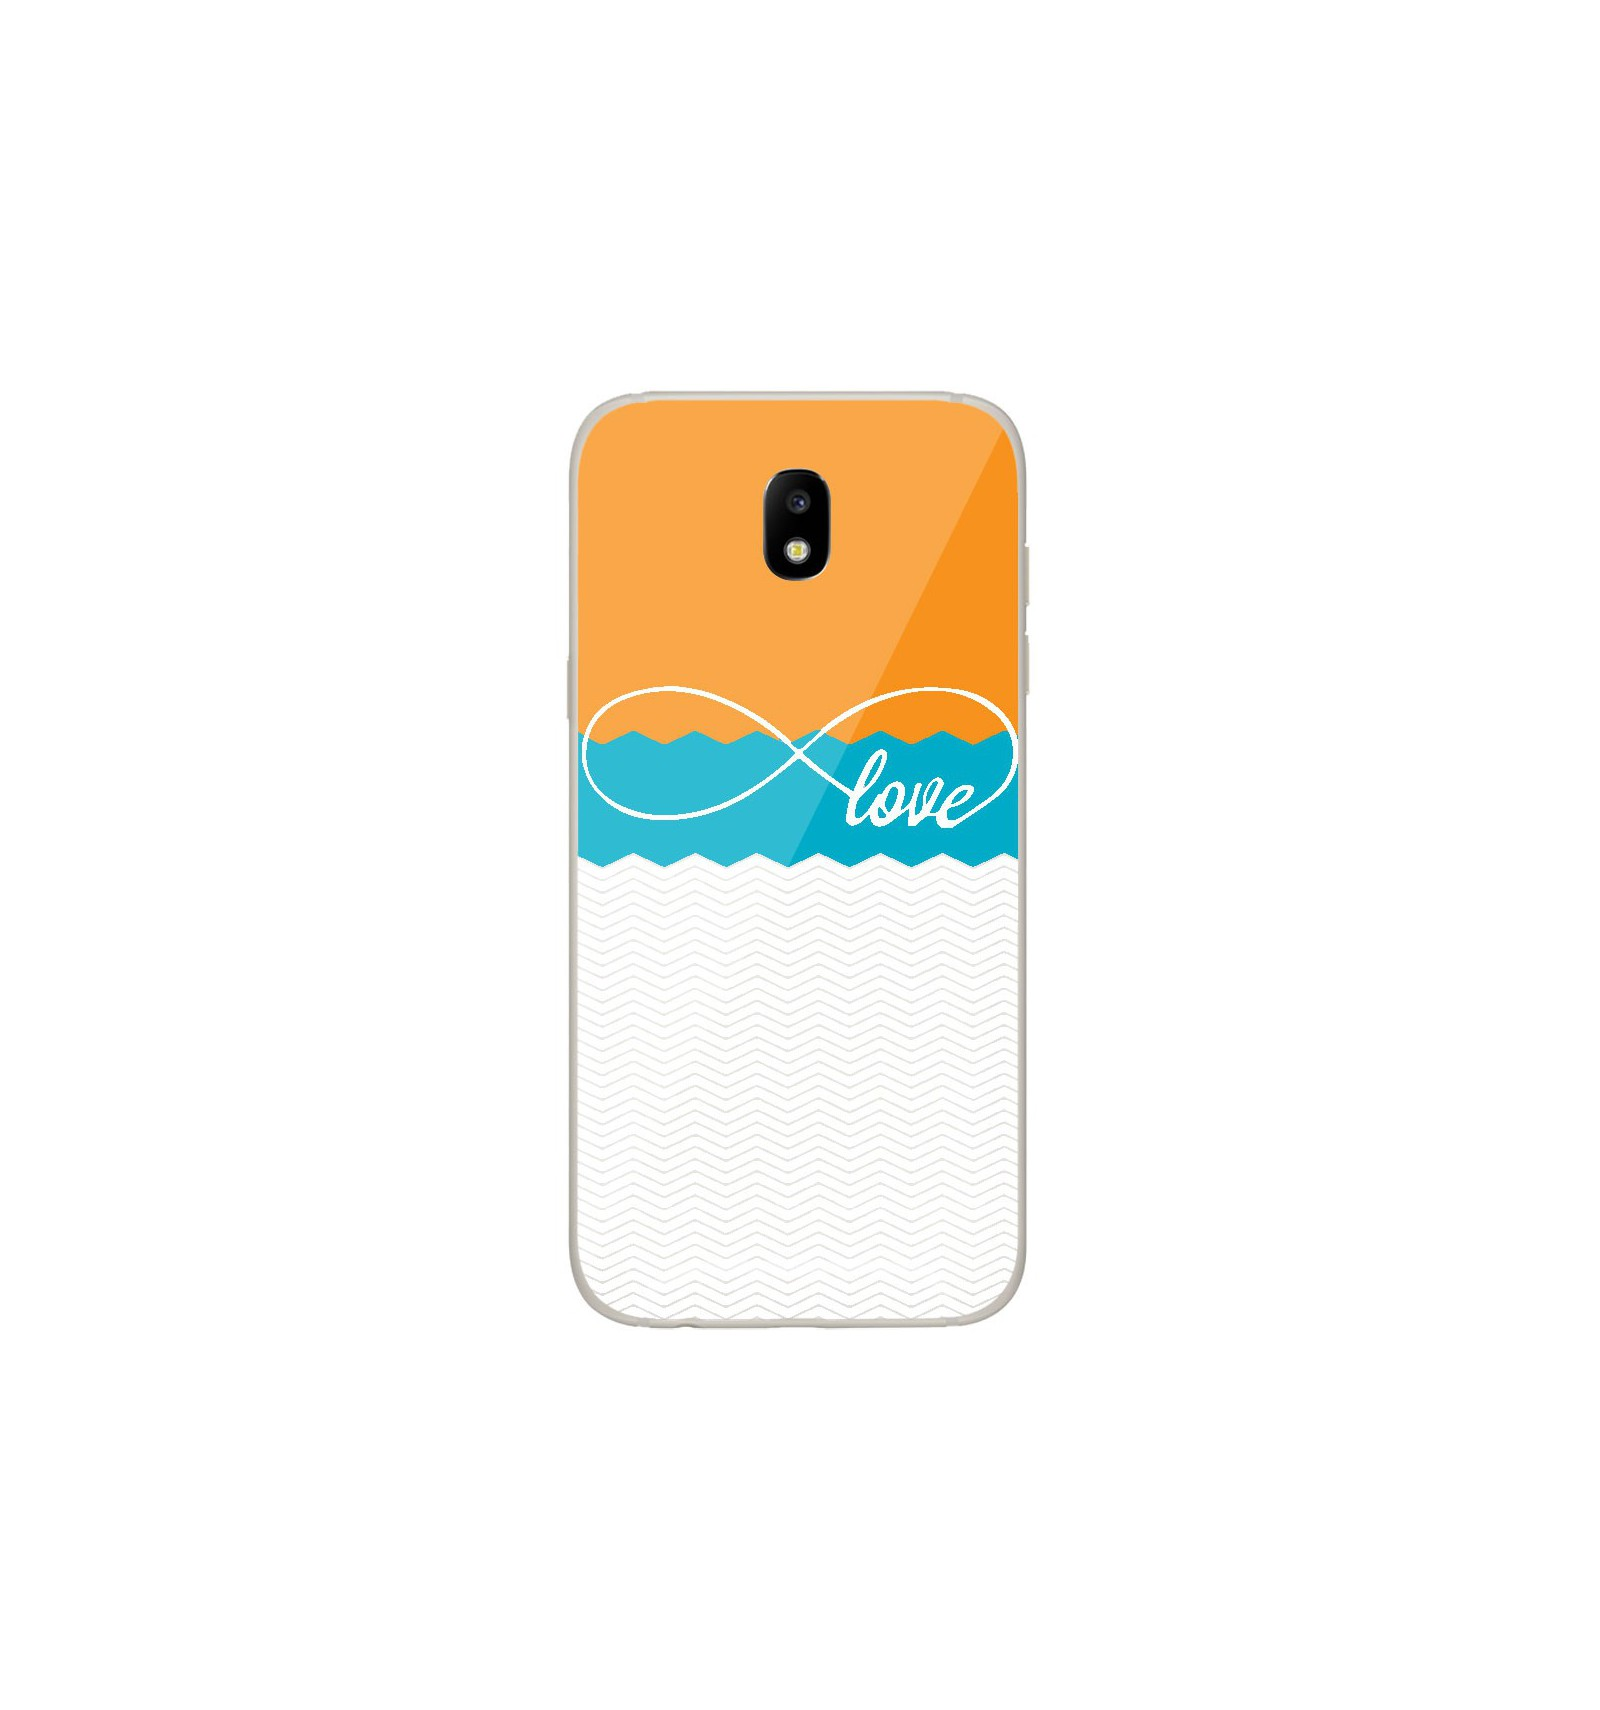 coque samsung j5 2017 orange